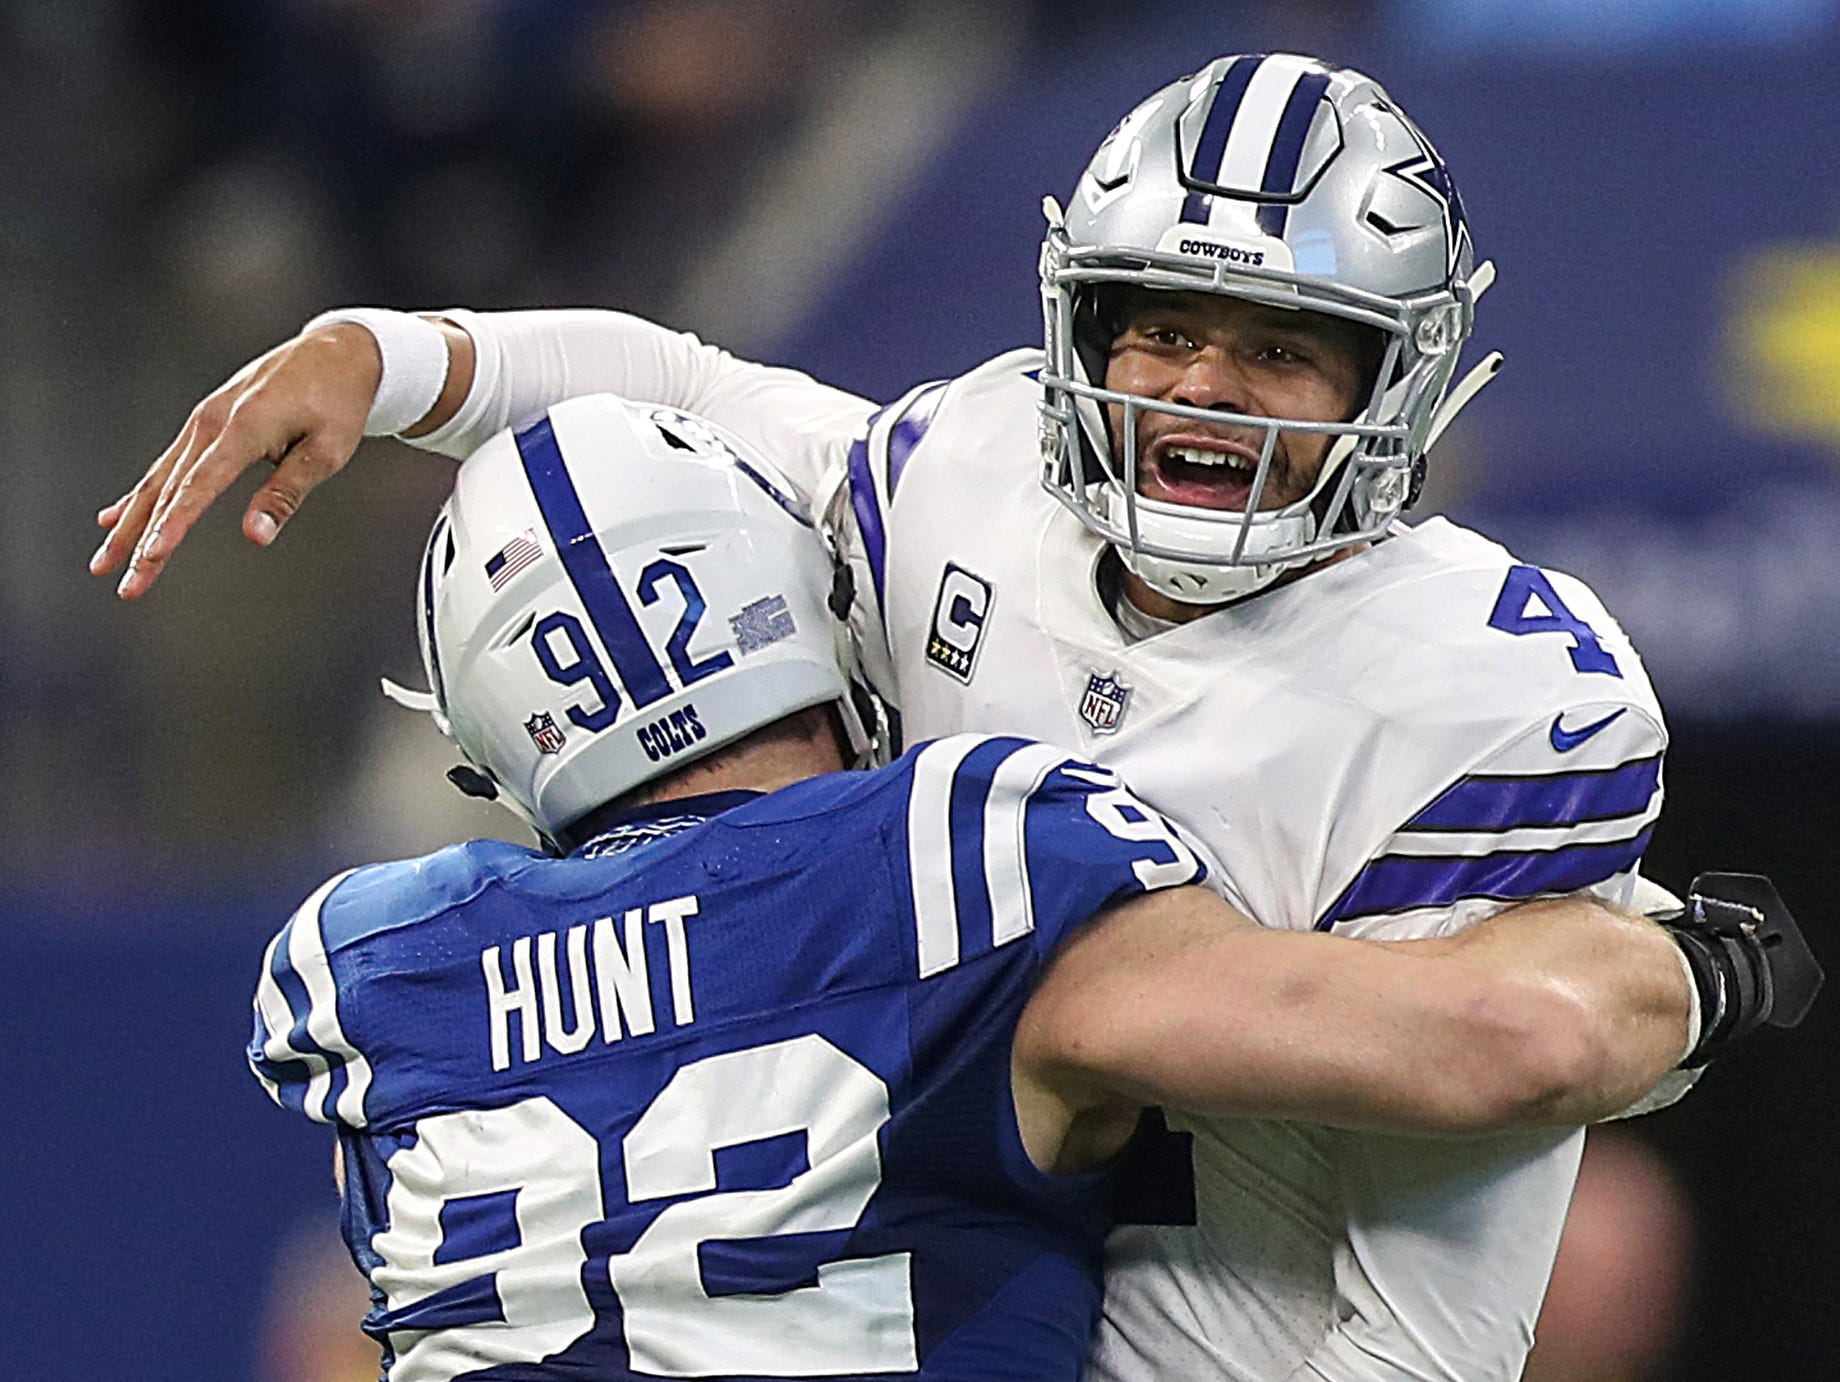 Indianapolis Colts defensive end Margus Hunt (92) pressured Dallas Cowboys quarterback Dak Prescott (4) to get rid of the ball in the second half of the game at Lucas Oil Stadium in Indianapolis, Sunday, Dec. 16, 2018.